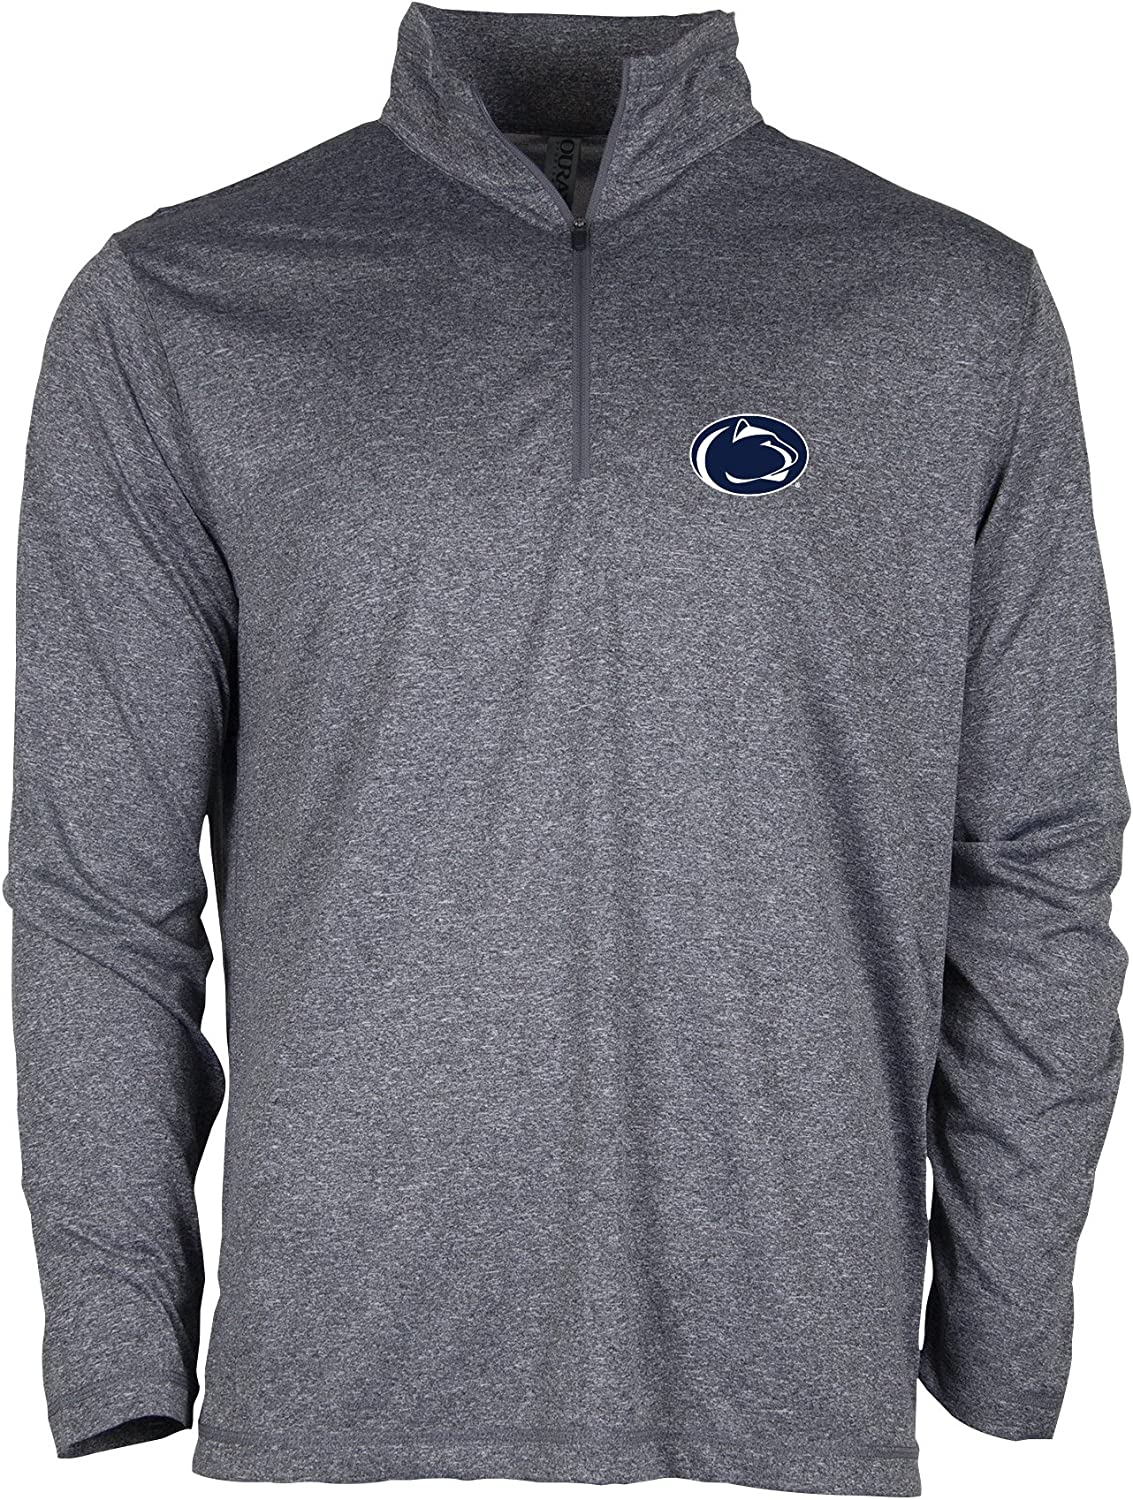 Ouray Sportswear Mens Confluence 1//4 Zip